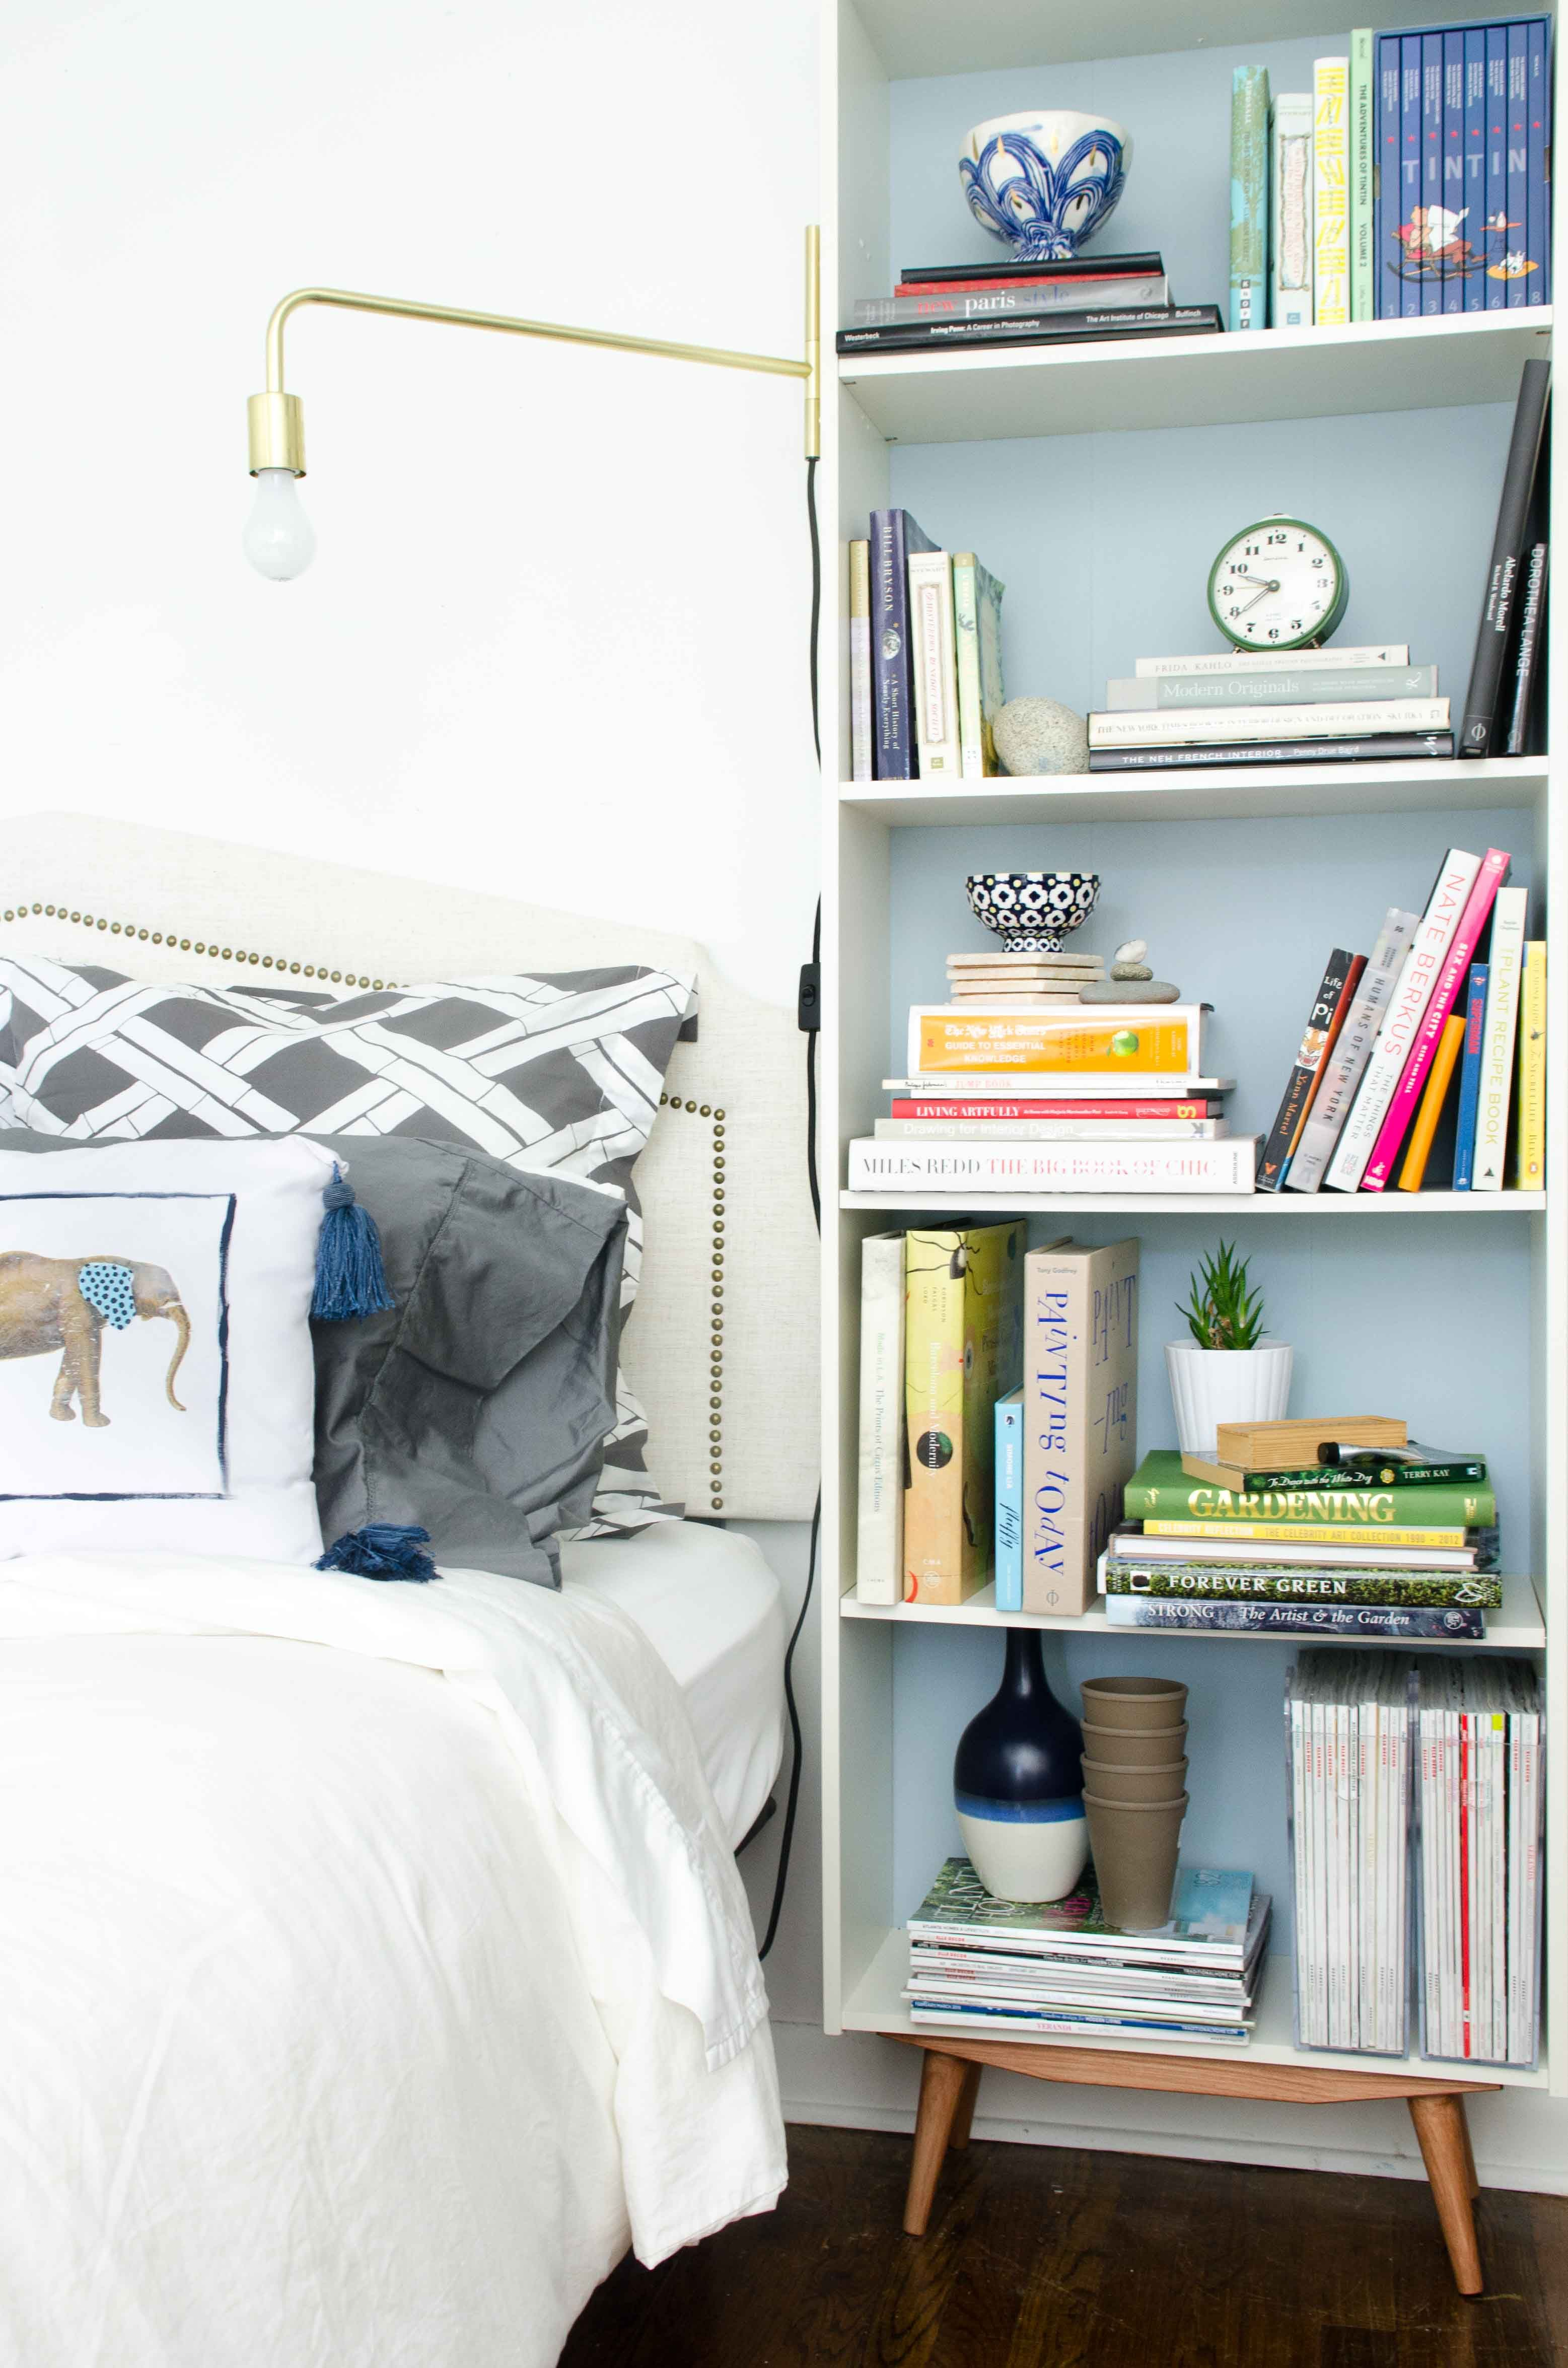 Diy mid century bookcase with brass swing arm sconce beside the bed via thouswellblog